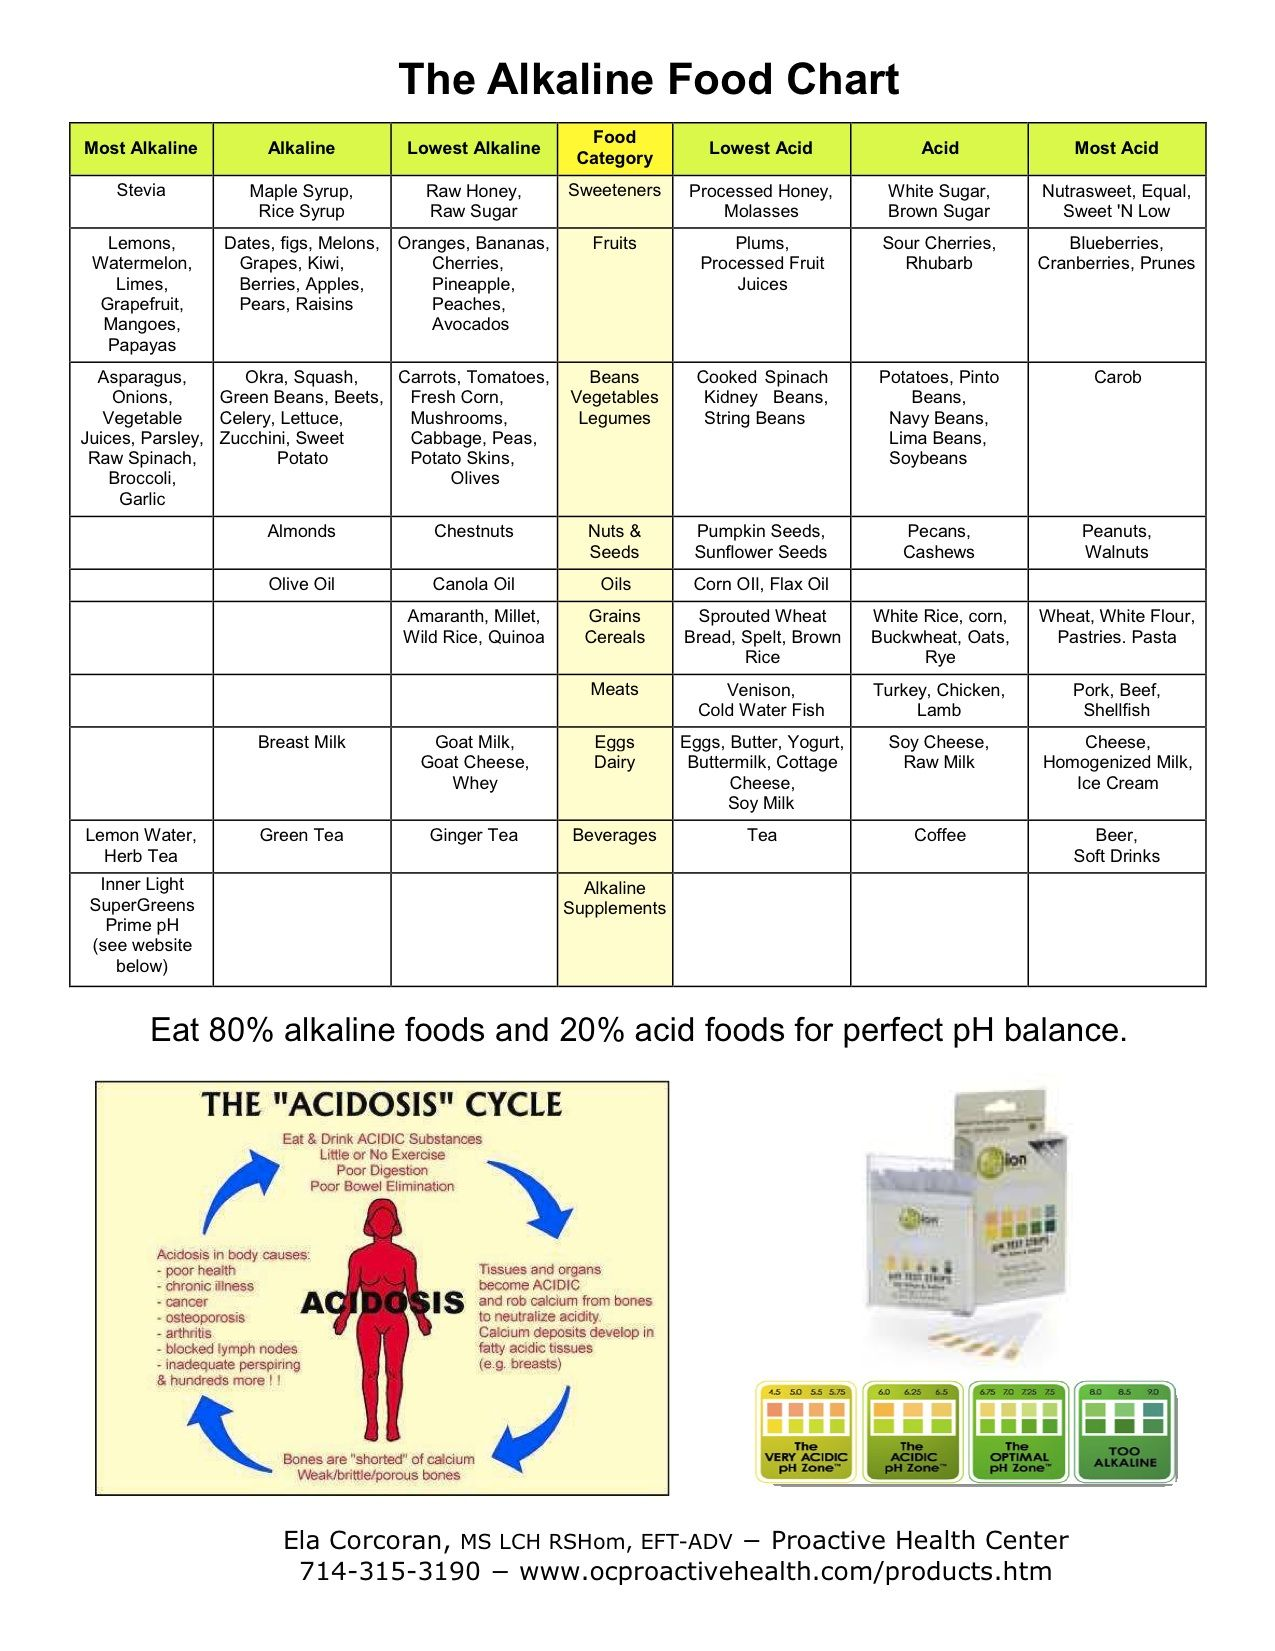 Pin on Health and Medicine